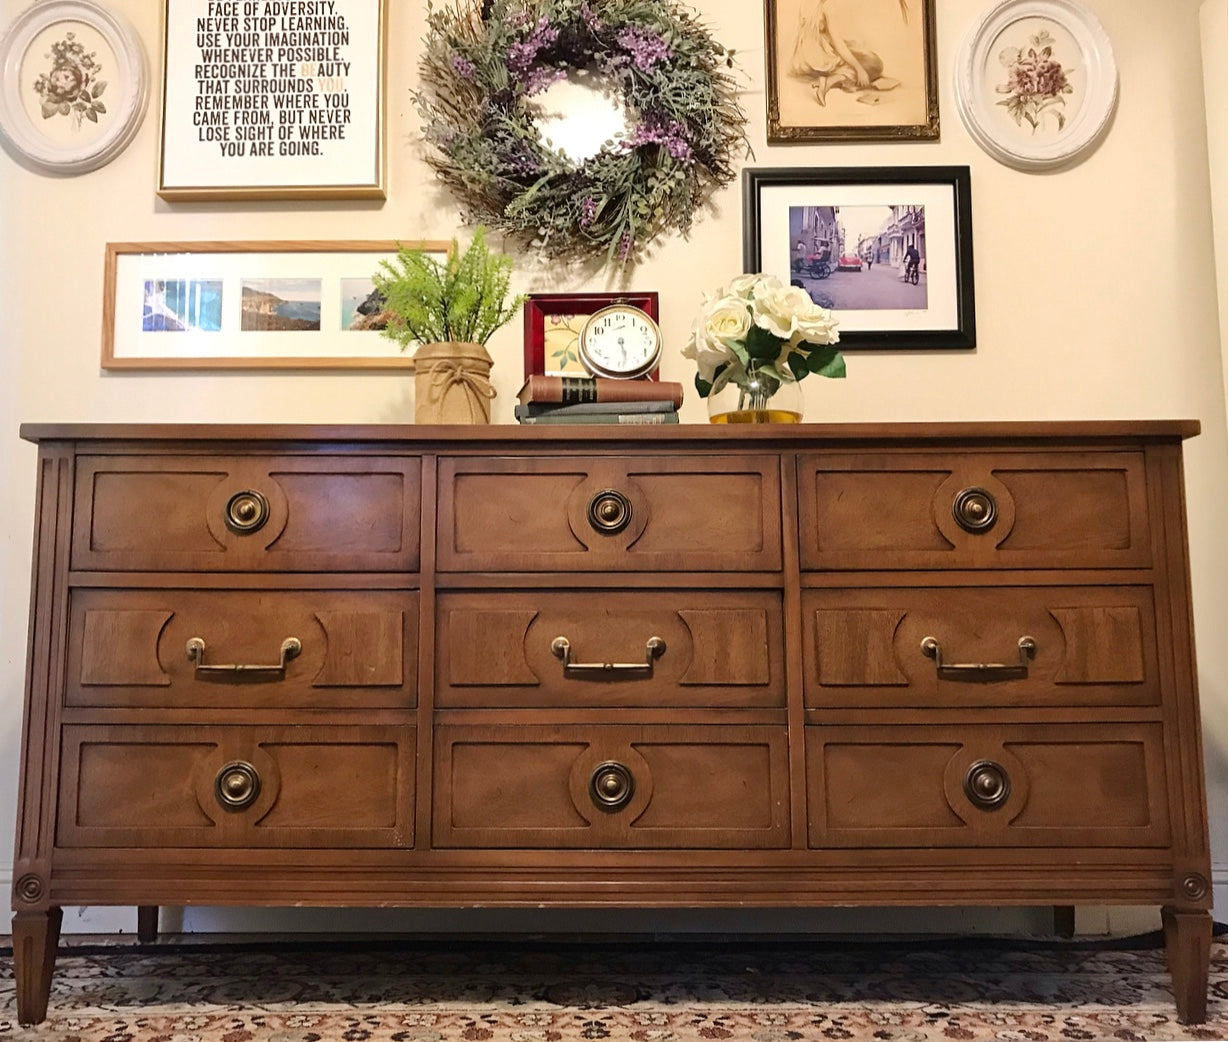 (SOLD) Gorgeous and Barely Used Mayflower Furniture Co. Mid-Century Modern Dresser and Chest of Drawers in Excellent Condition!!!